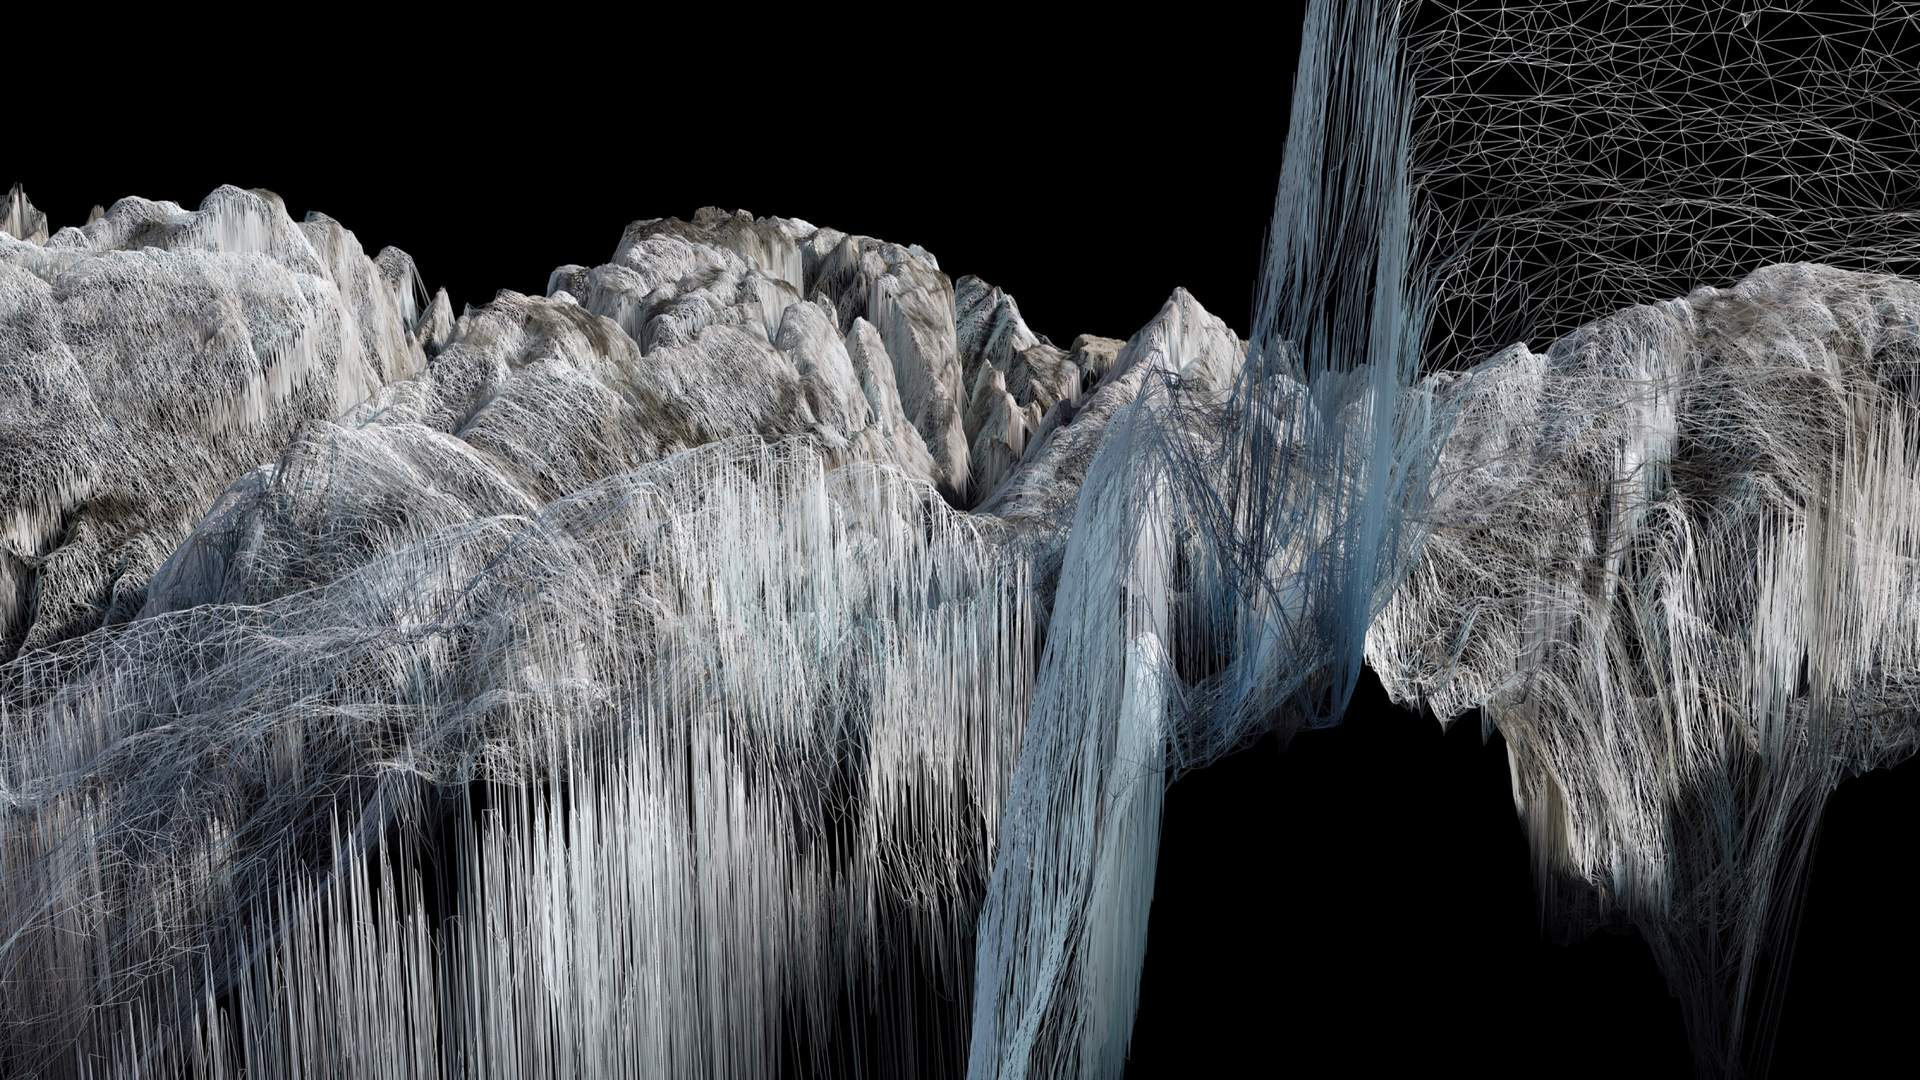 Glacier photographic art by Dan Holdsworth.